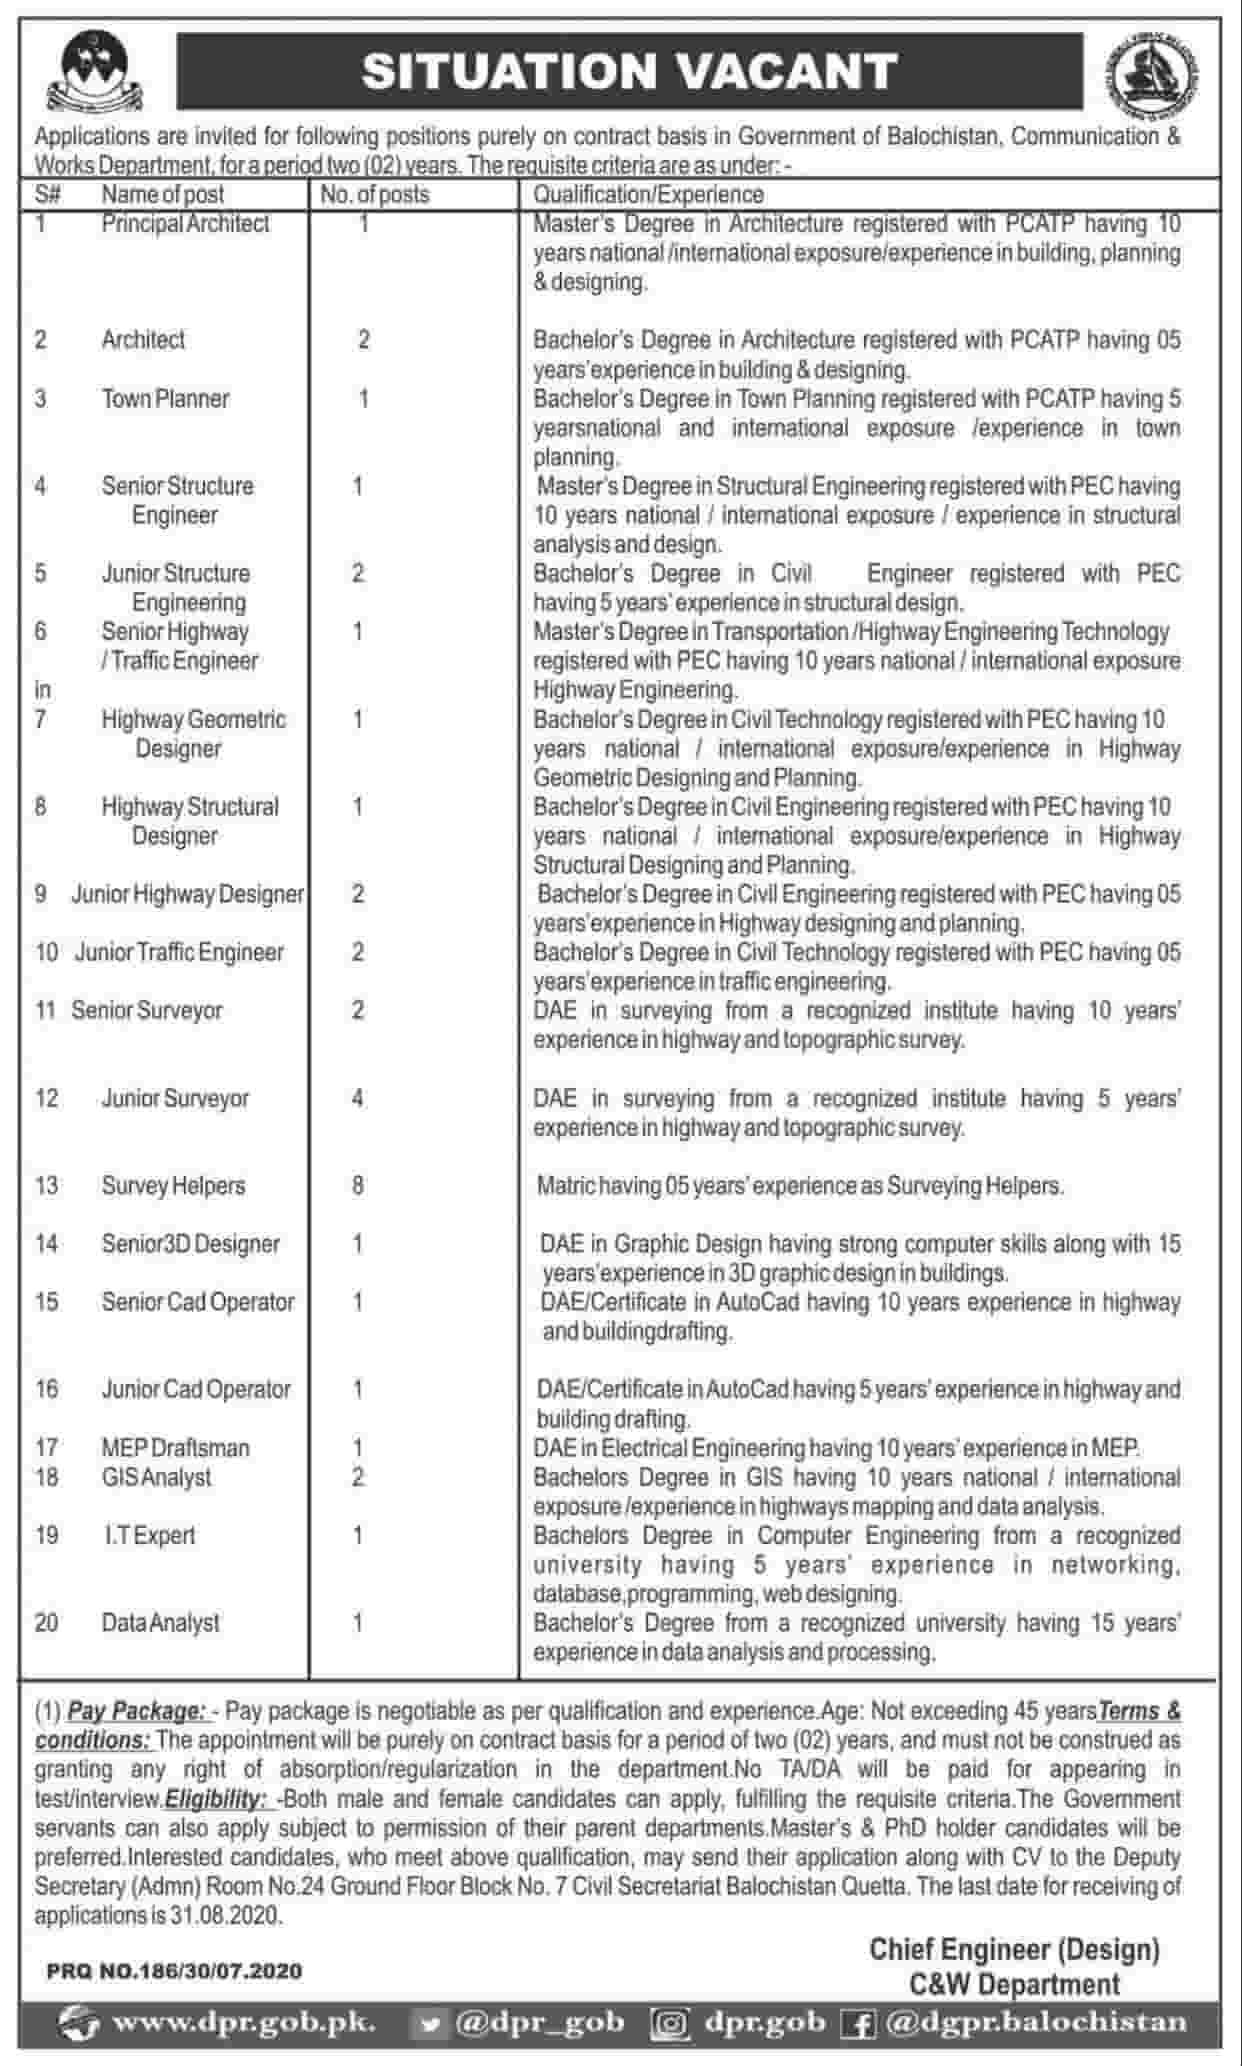 Govt Of Balochistan Communication And Works Department Jobs August 2020